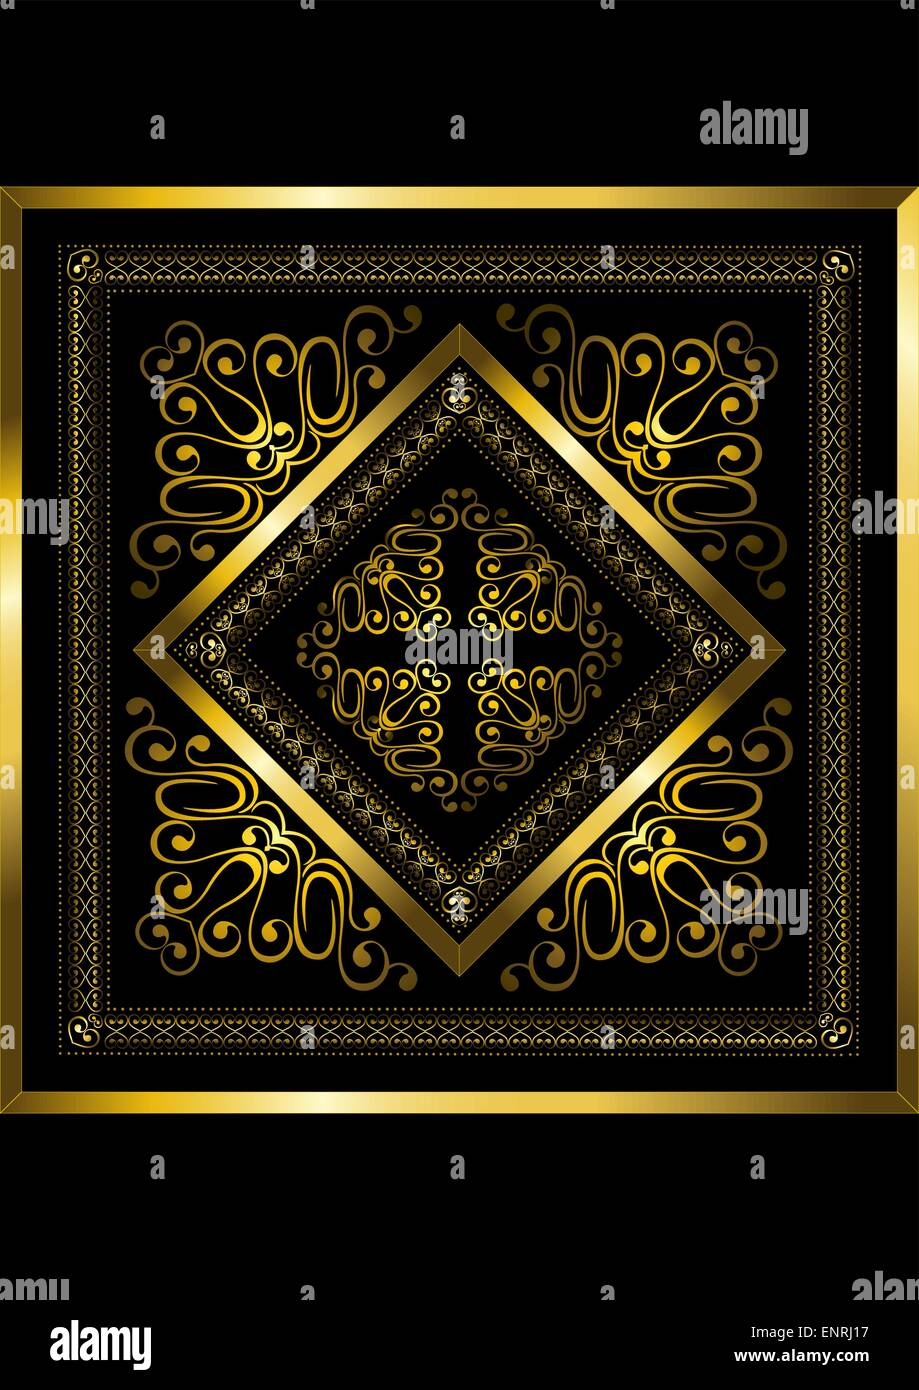 Gold frame with openwork ornament - Stock Image